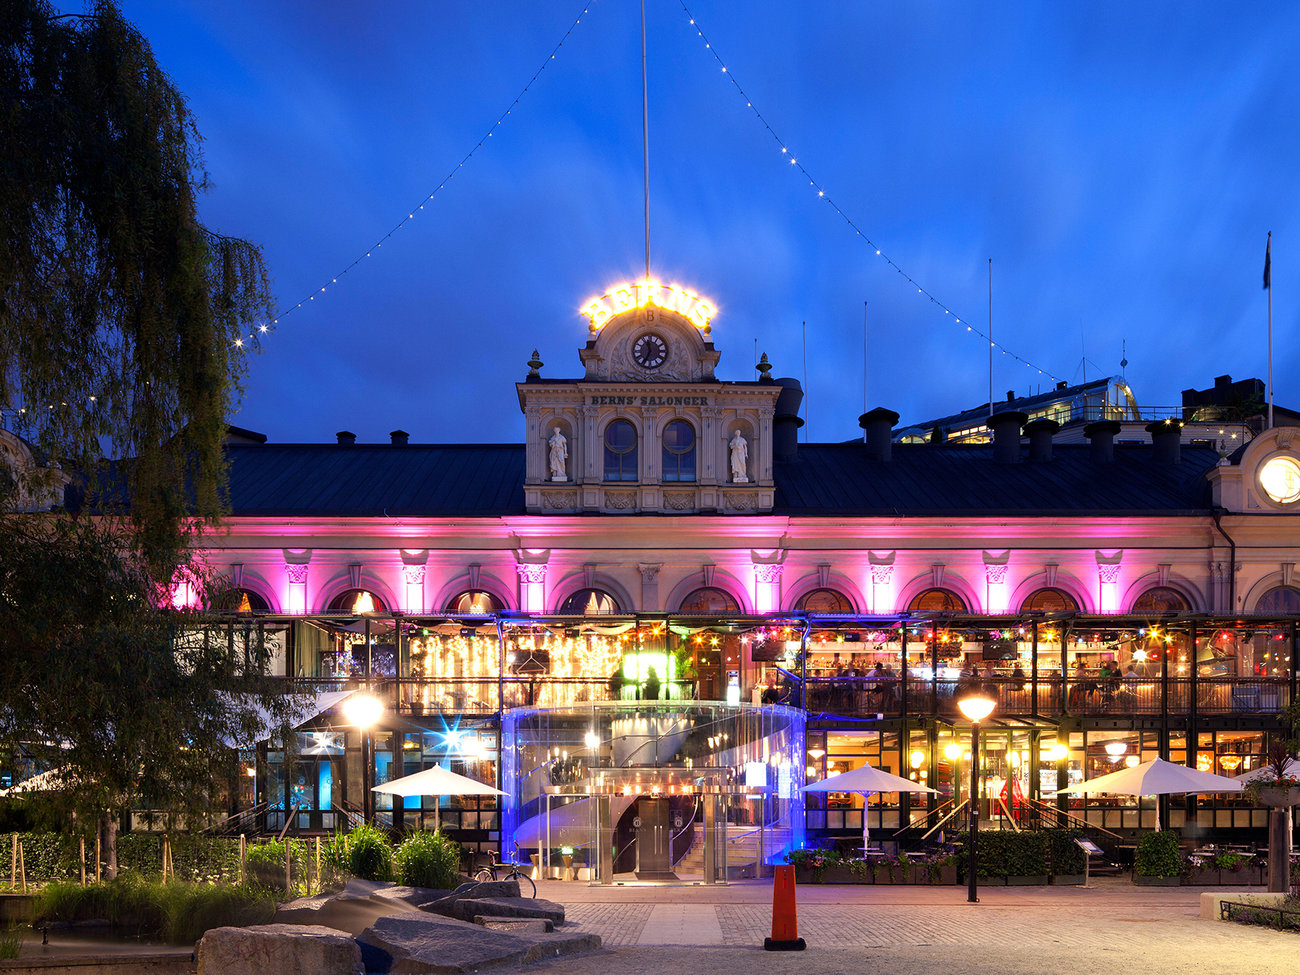 Berns Nightclub and Bar in Stockholm